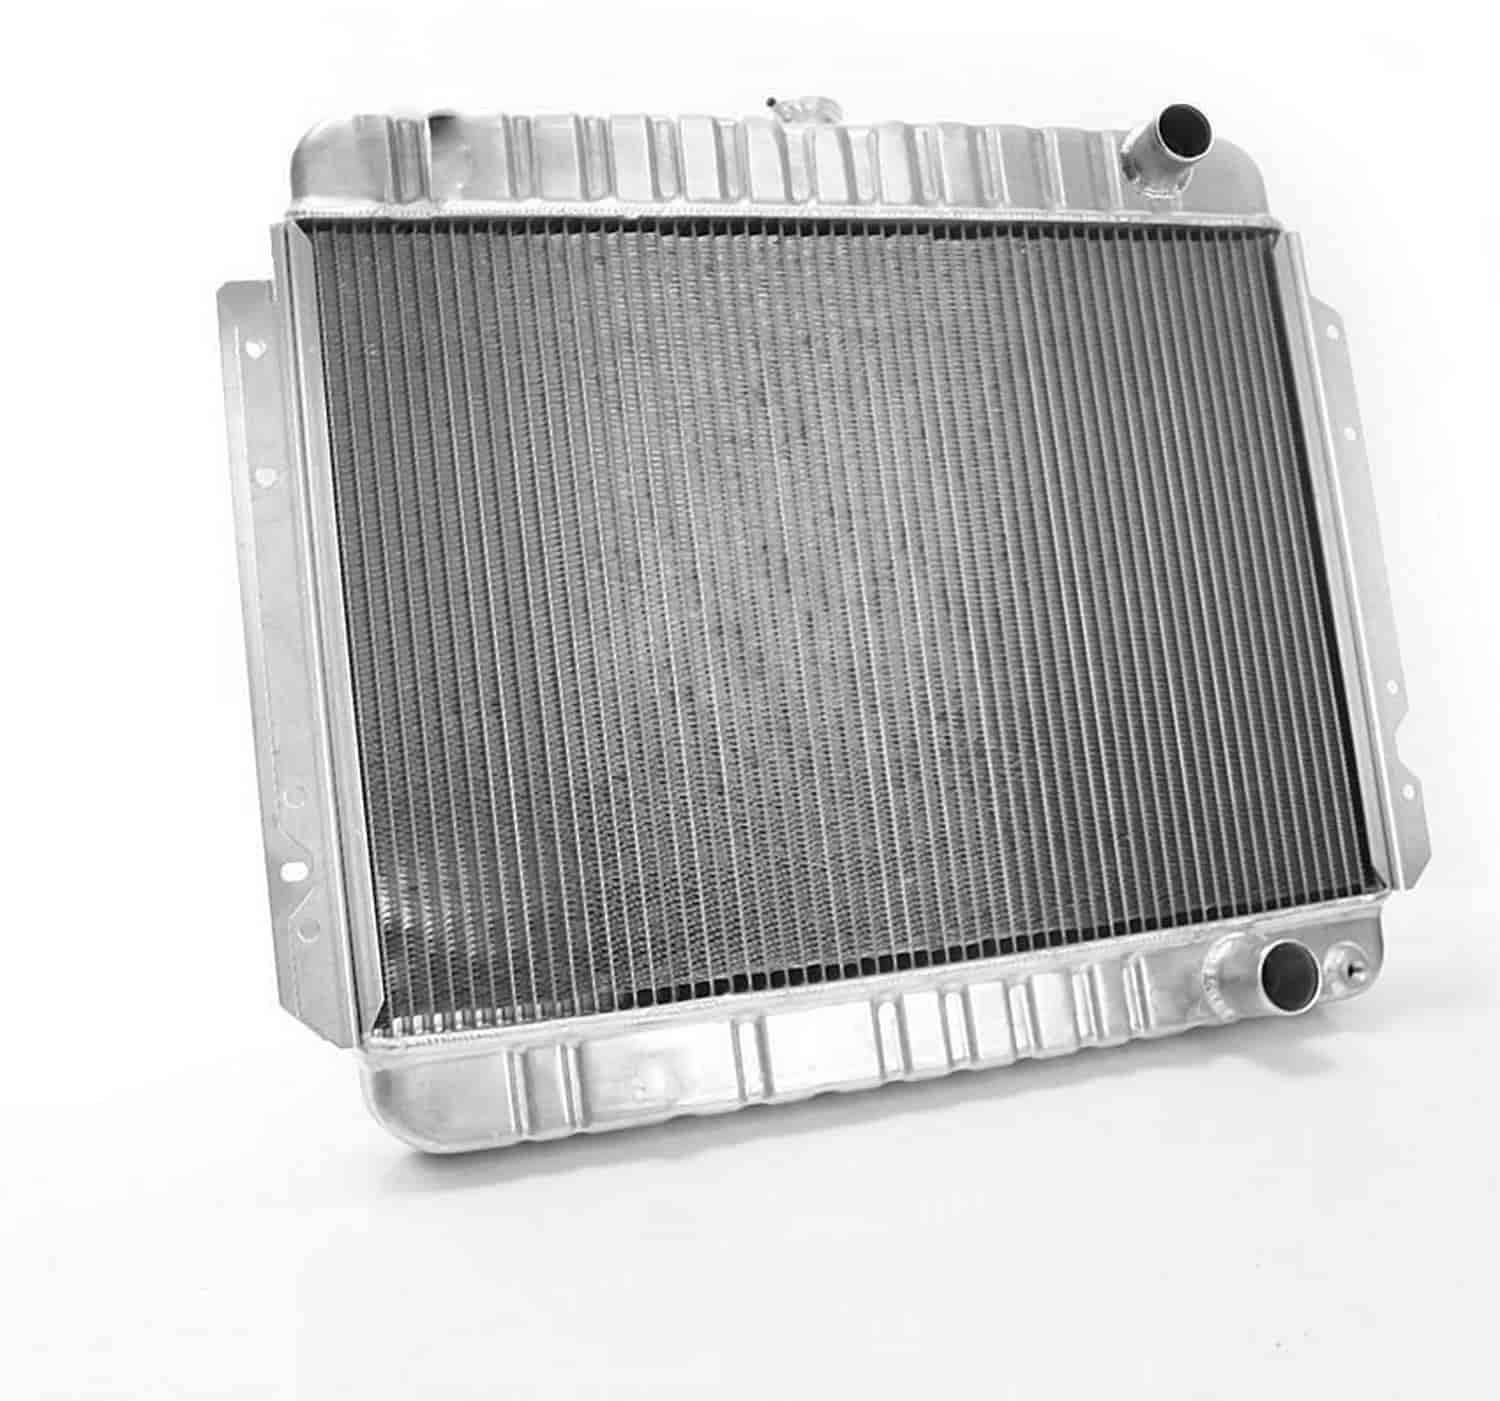 Griffin Radiators 6-70107